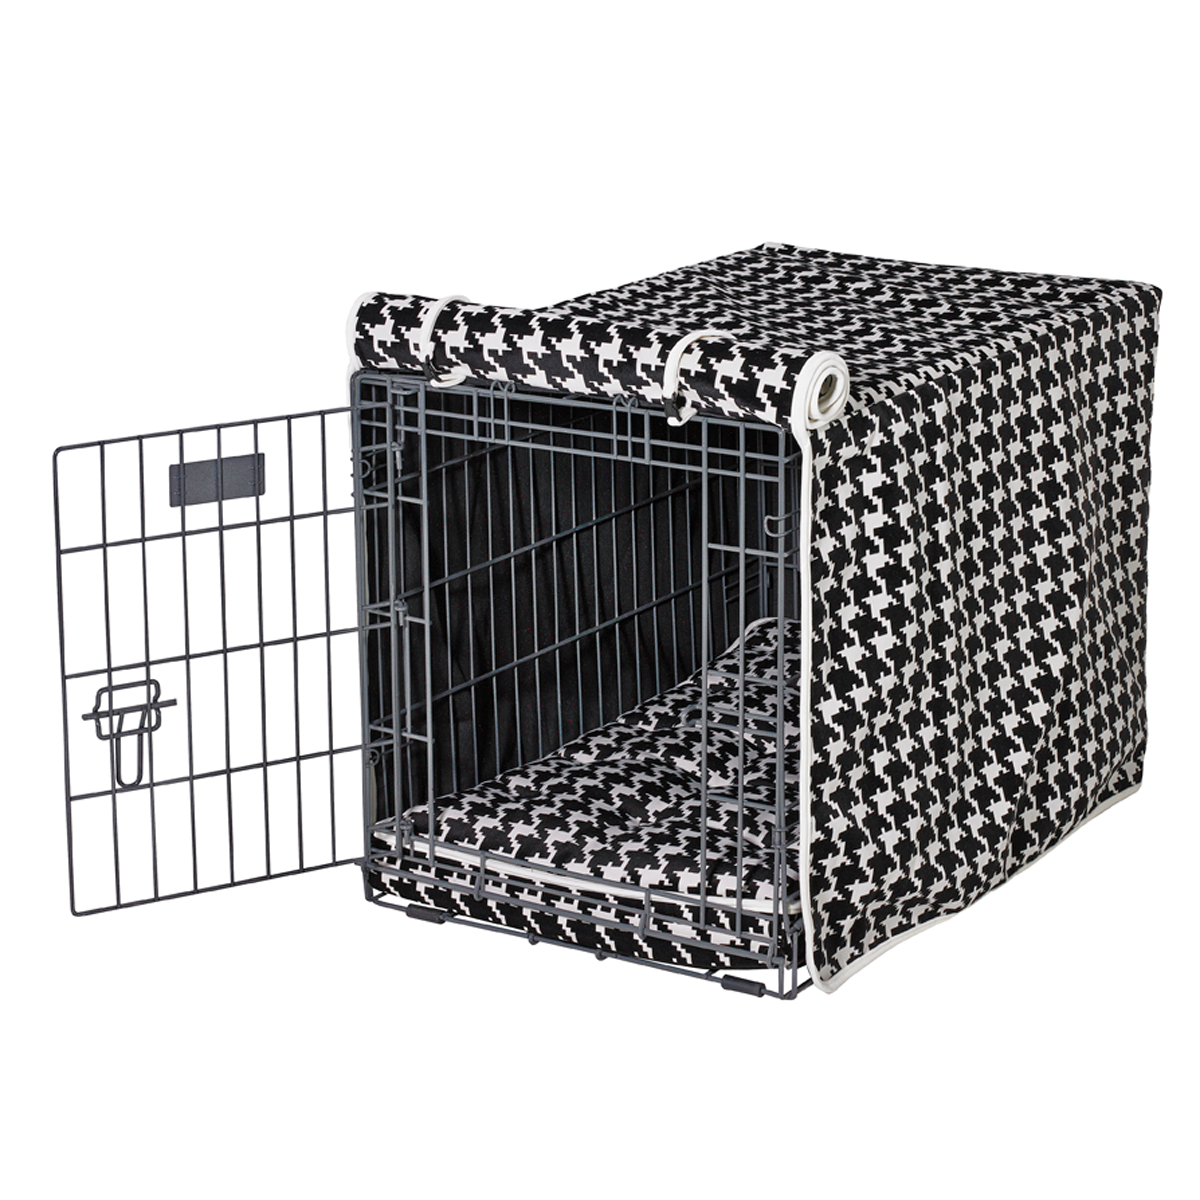 ascot check dog crate cover: Designer Dog Beds | Dog Collars | Dog Crates | Dog Costumes | Tags